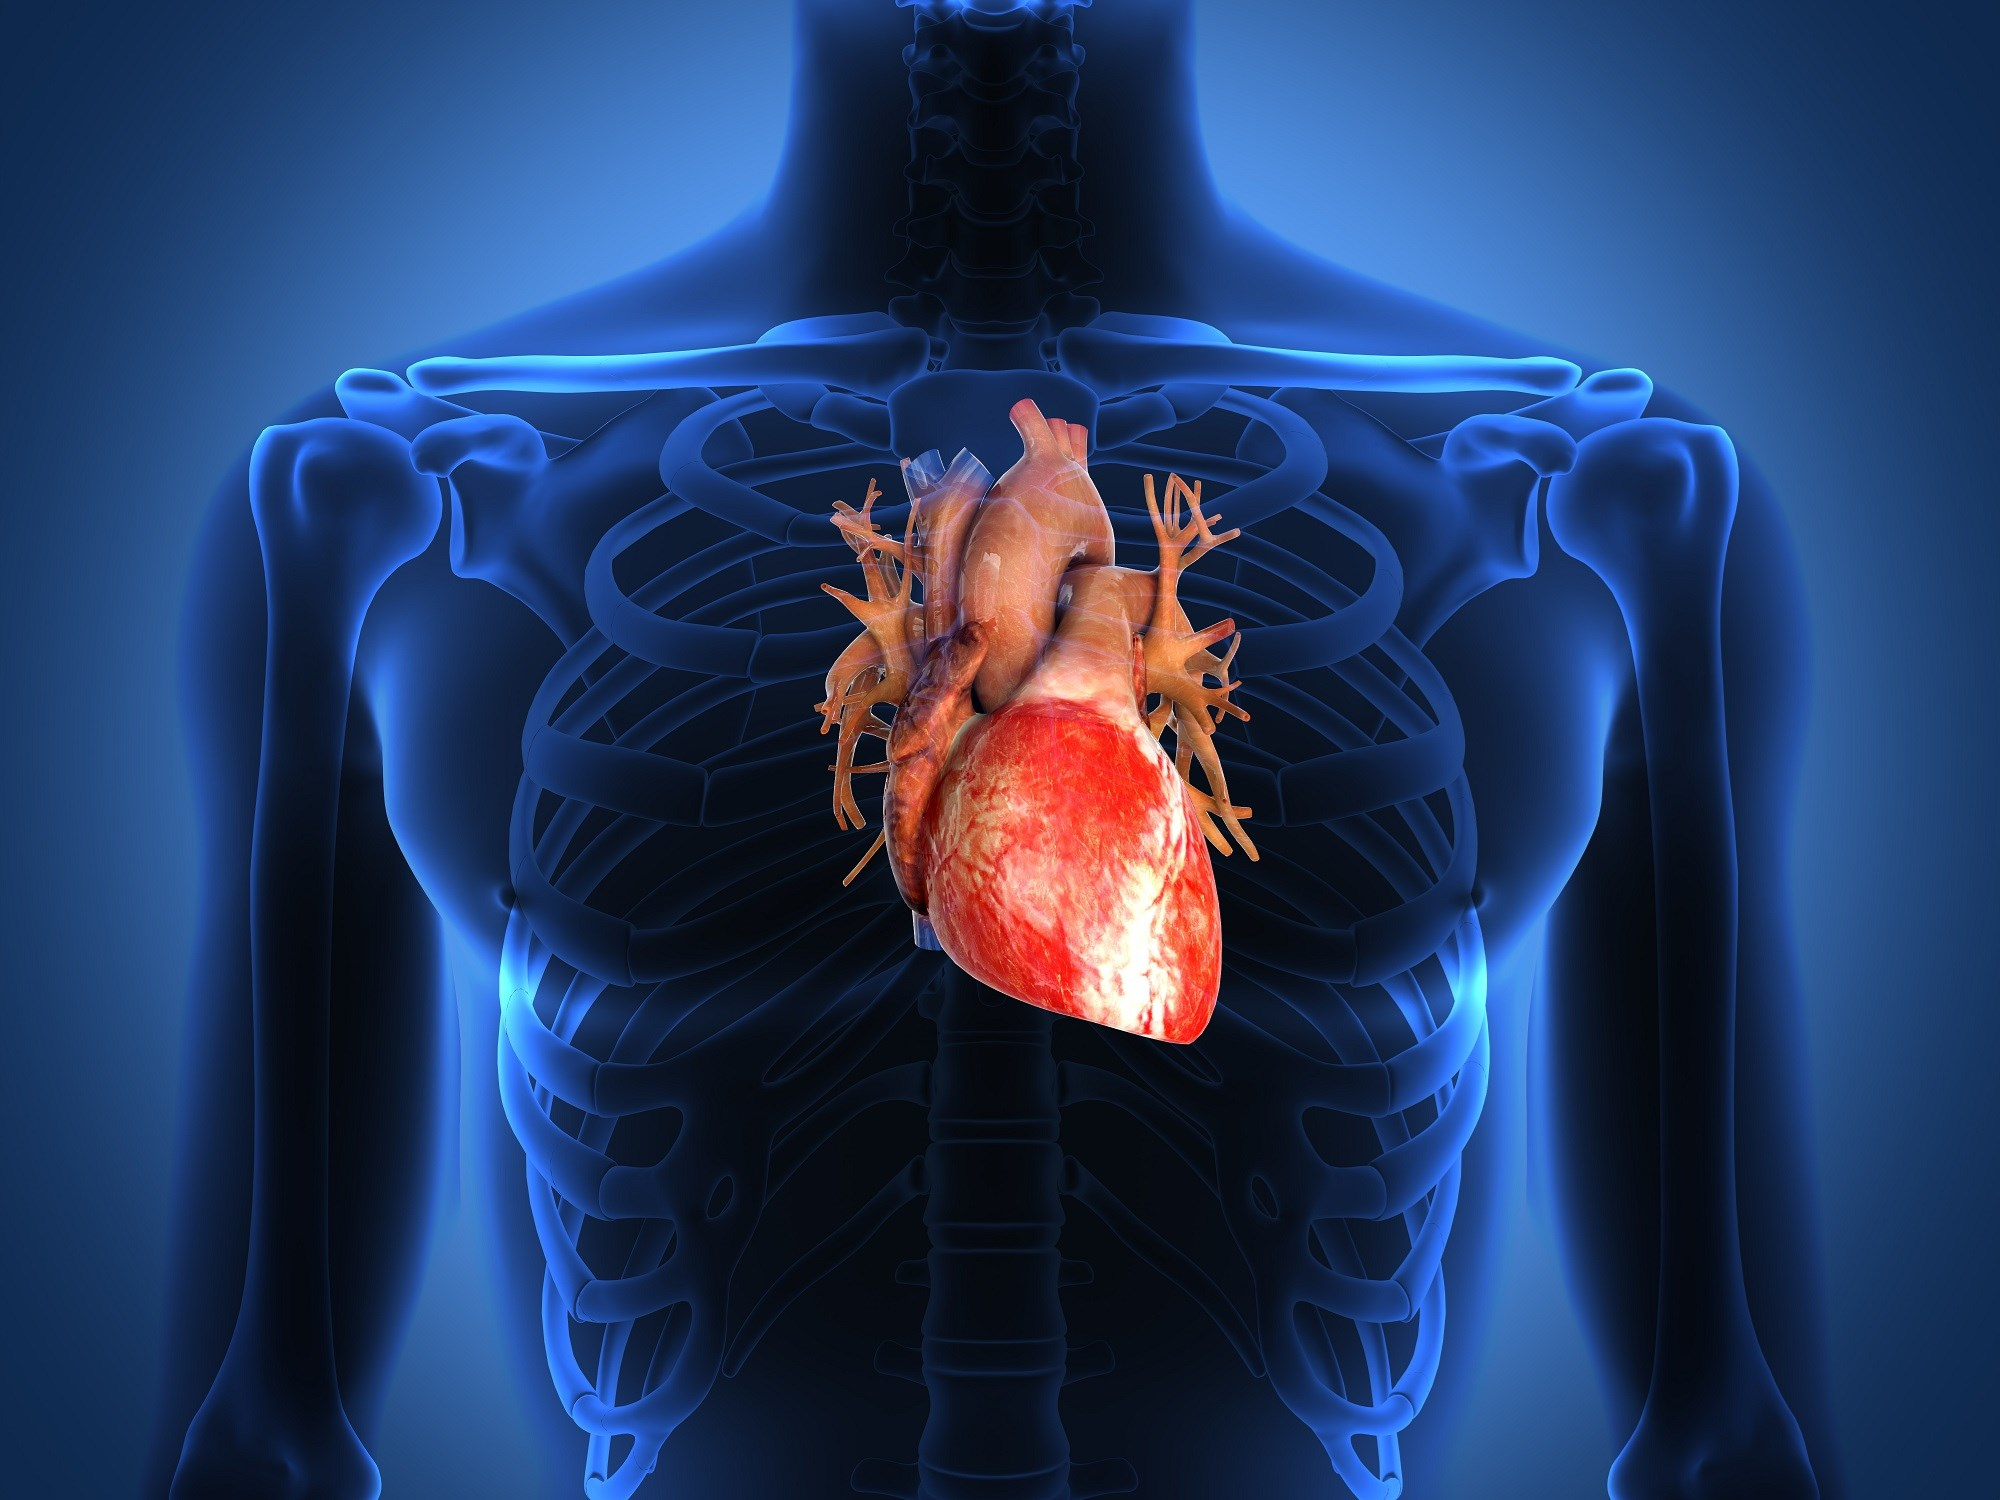 Tumor necrosis factor inhibitors and exercise may provide the best protection against increased risk for CVD in patients with RA.